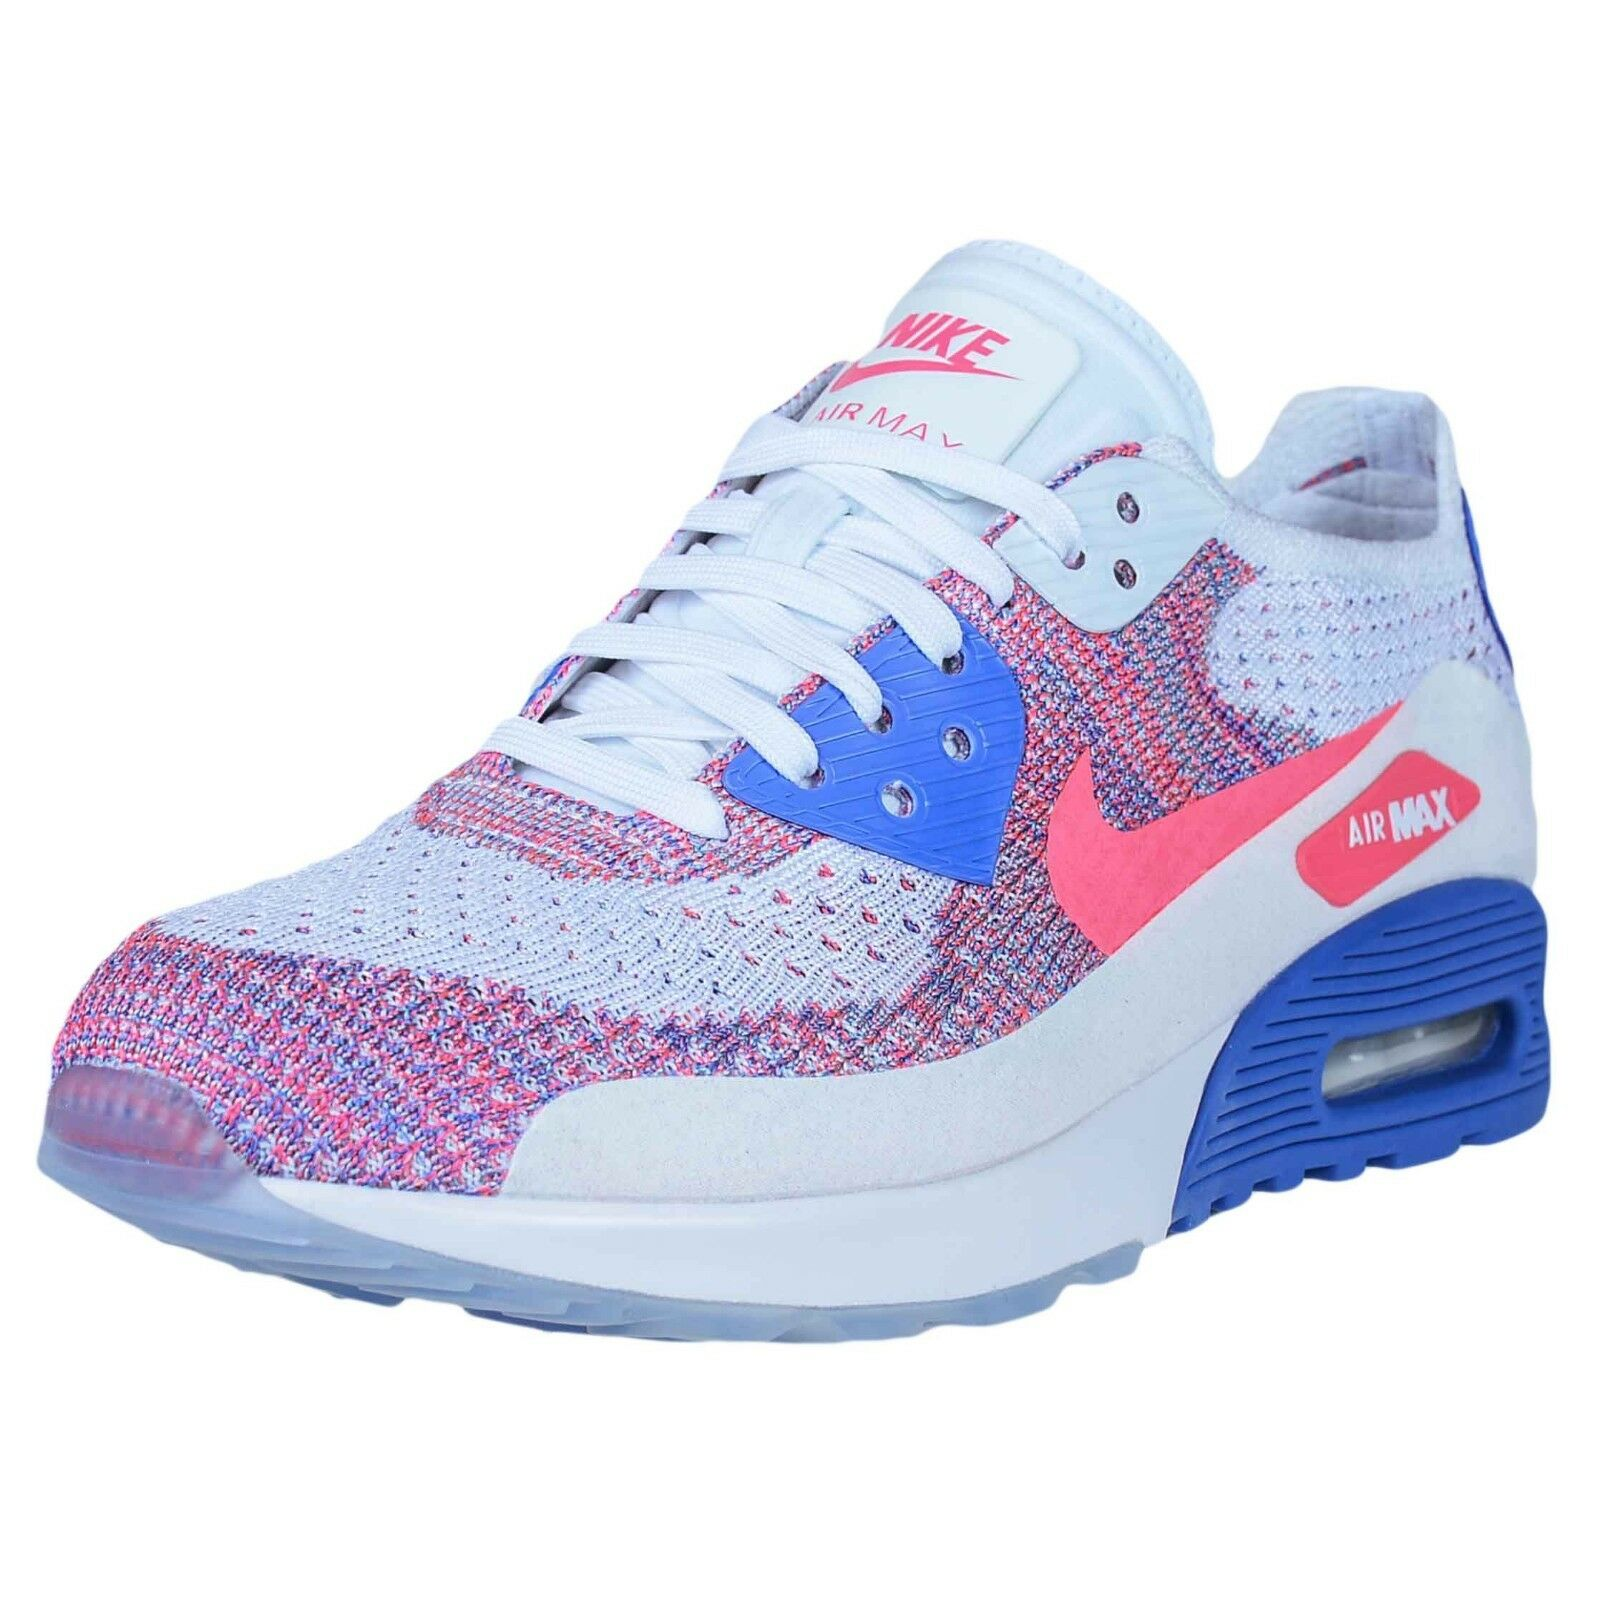 huge discount 43ab7 3005b ... official nike air max 90 femmes ultra 20 flyknit blanc flyknit racer  rose medium bleu 881109